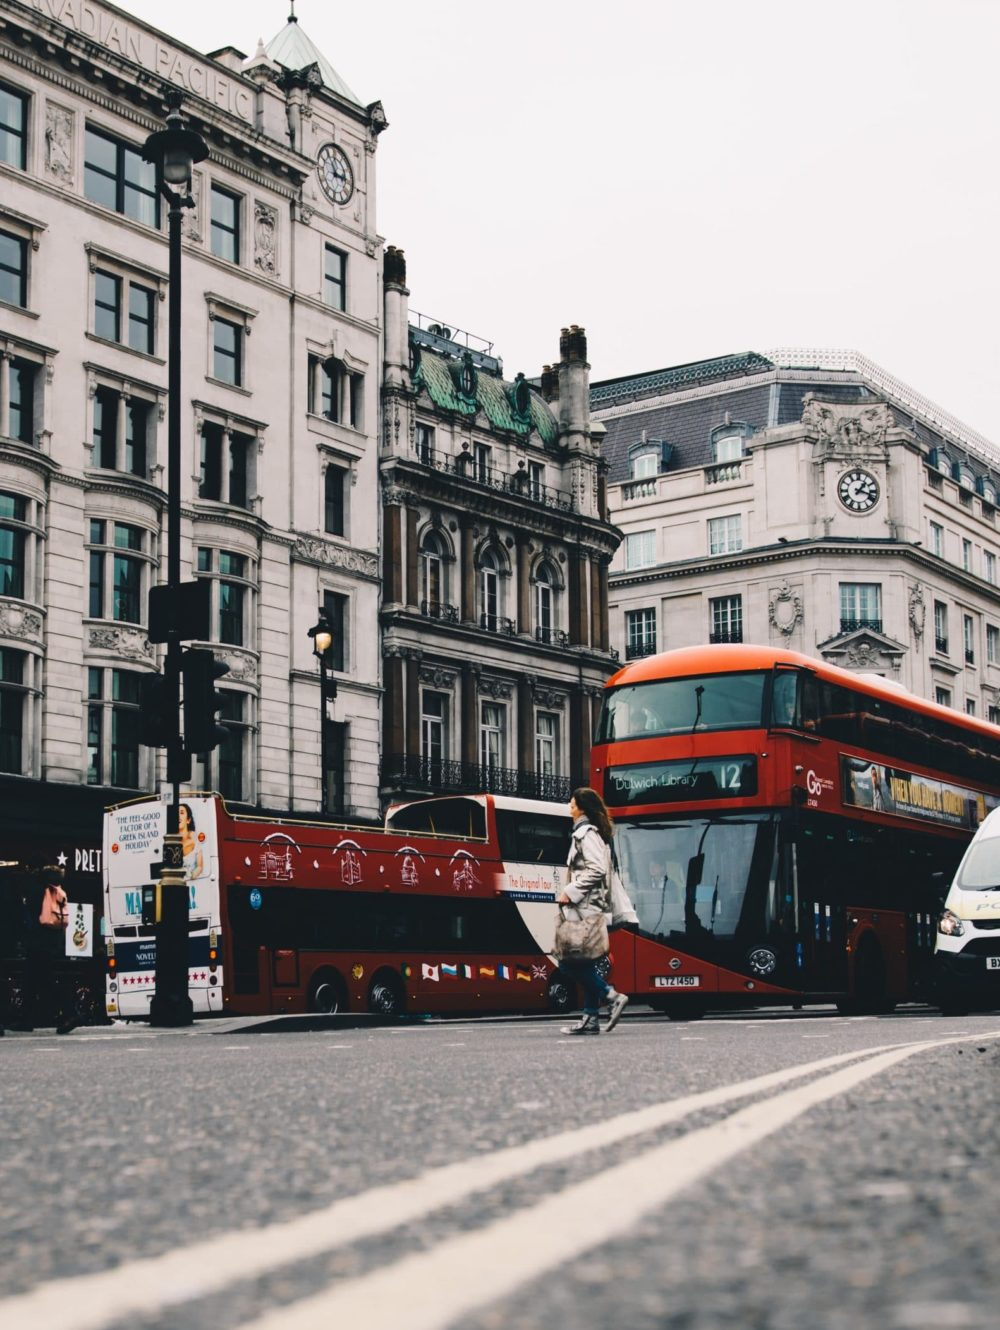 Street view of light brick buildings, cars and buses on the roads, and pedestrians crossing the street in London, England.